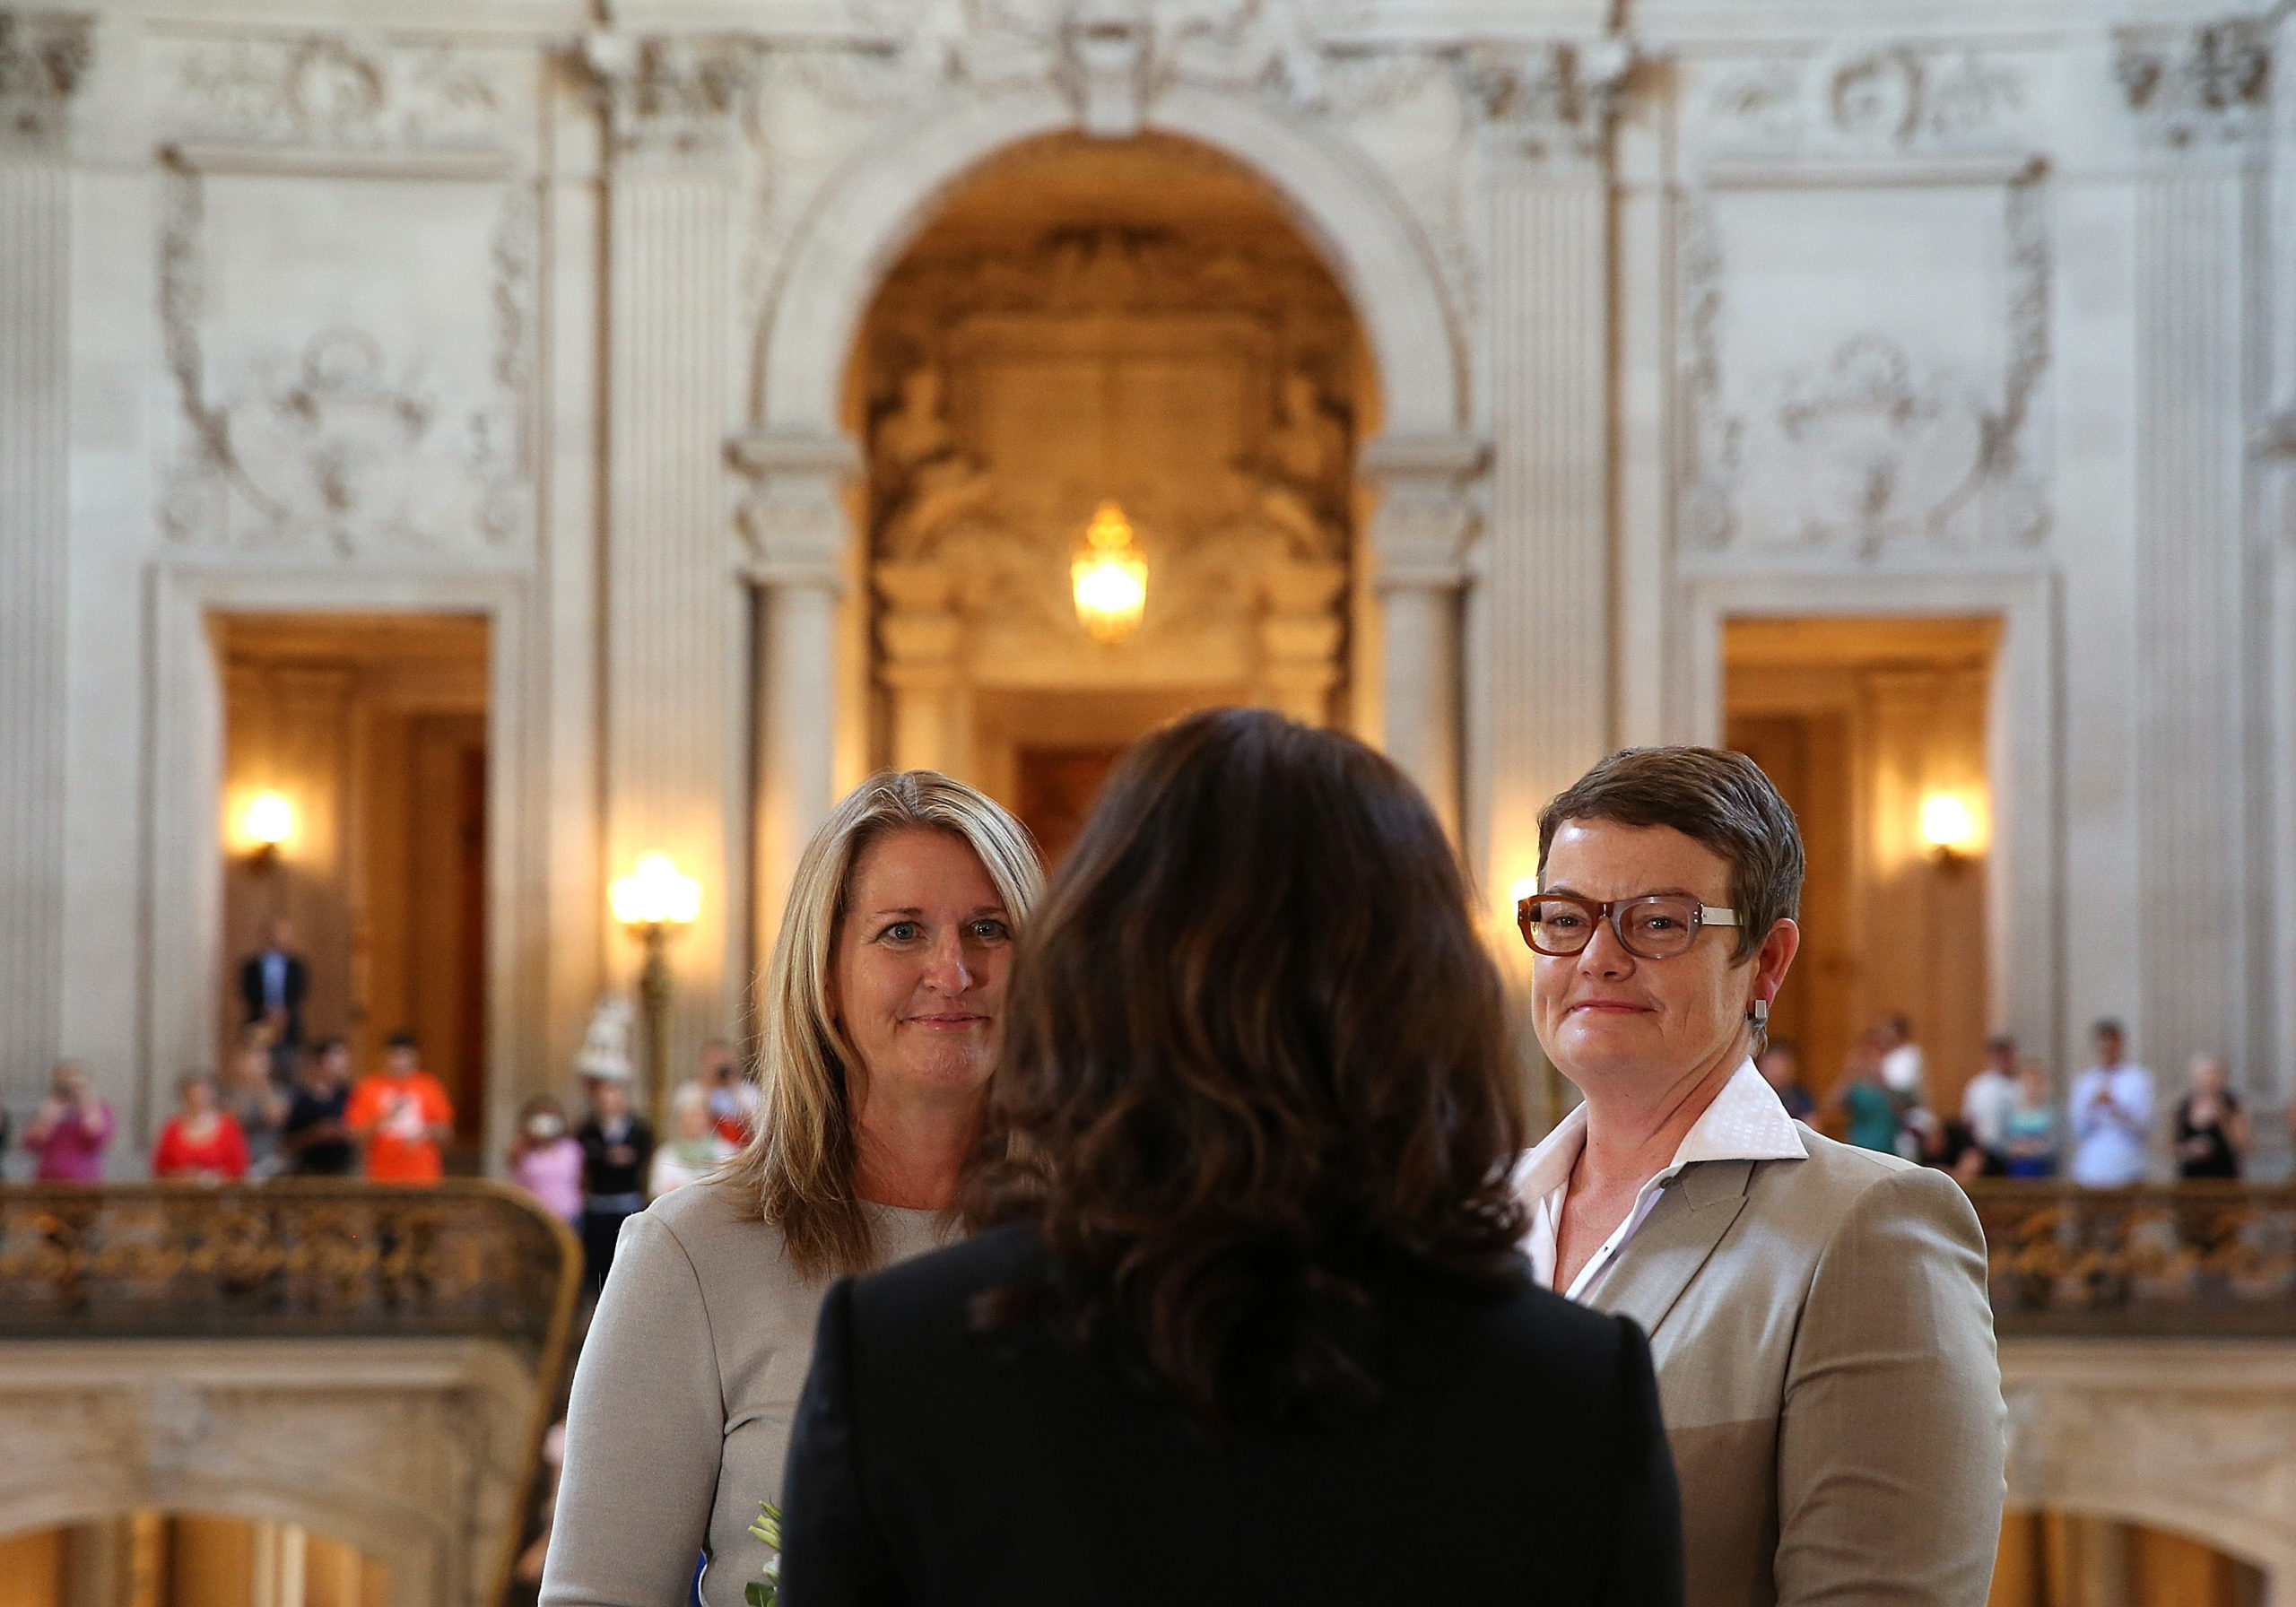 Same-sex couple Sandy Stier and Kris Perry are married at San Francisco City Hall by California Attorney General Kamala Harris on June 28, 2013